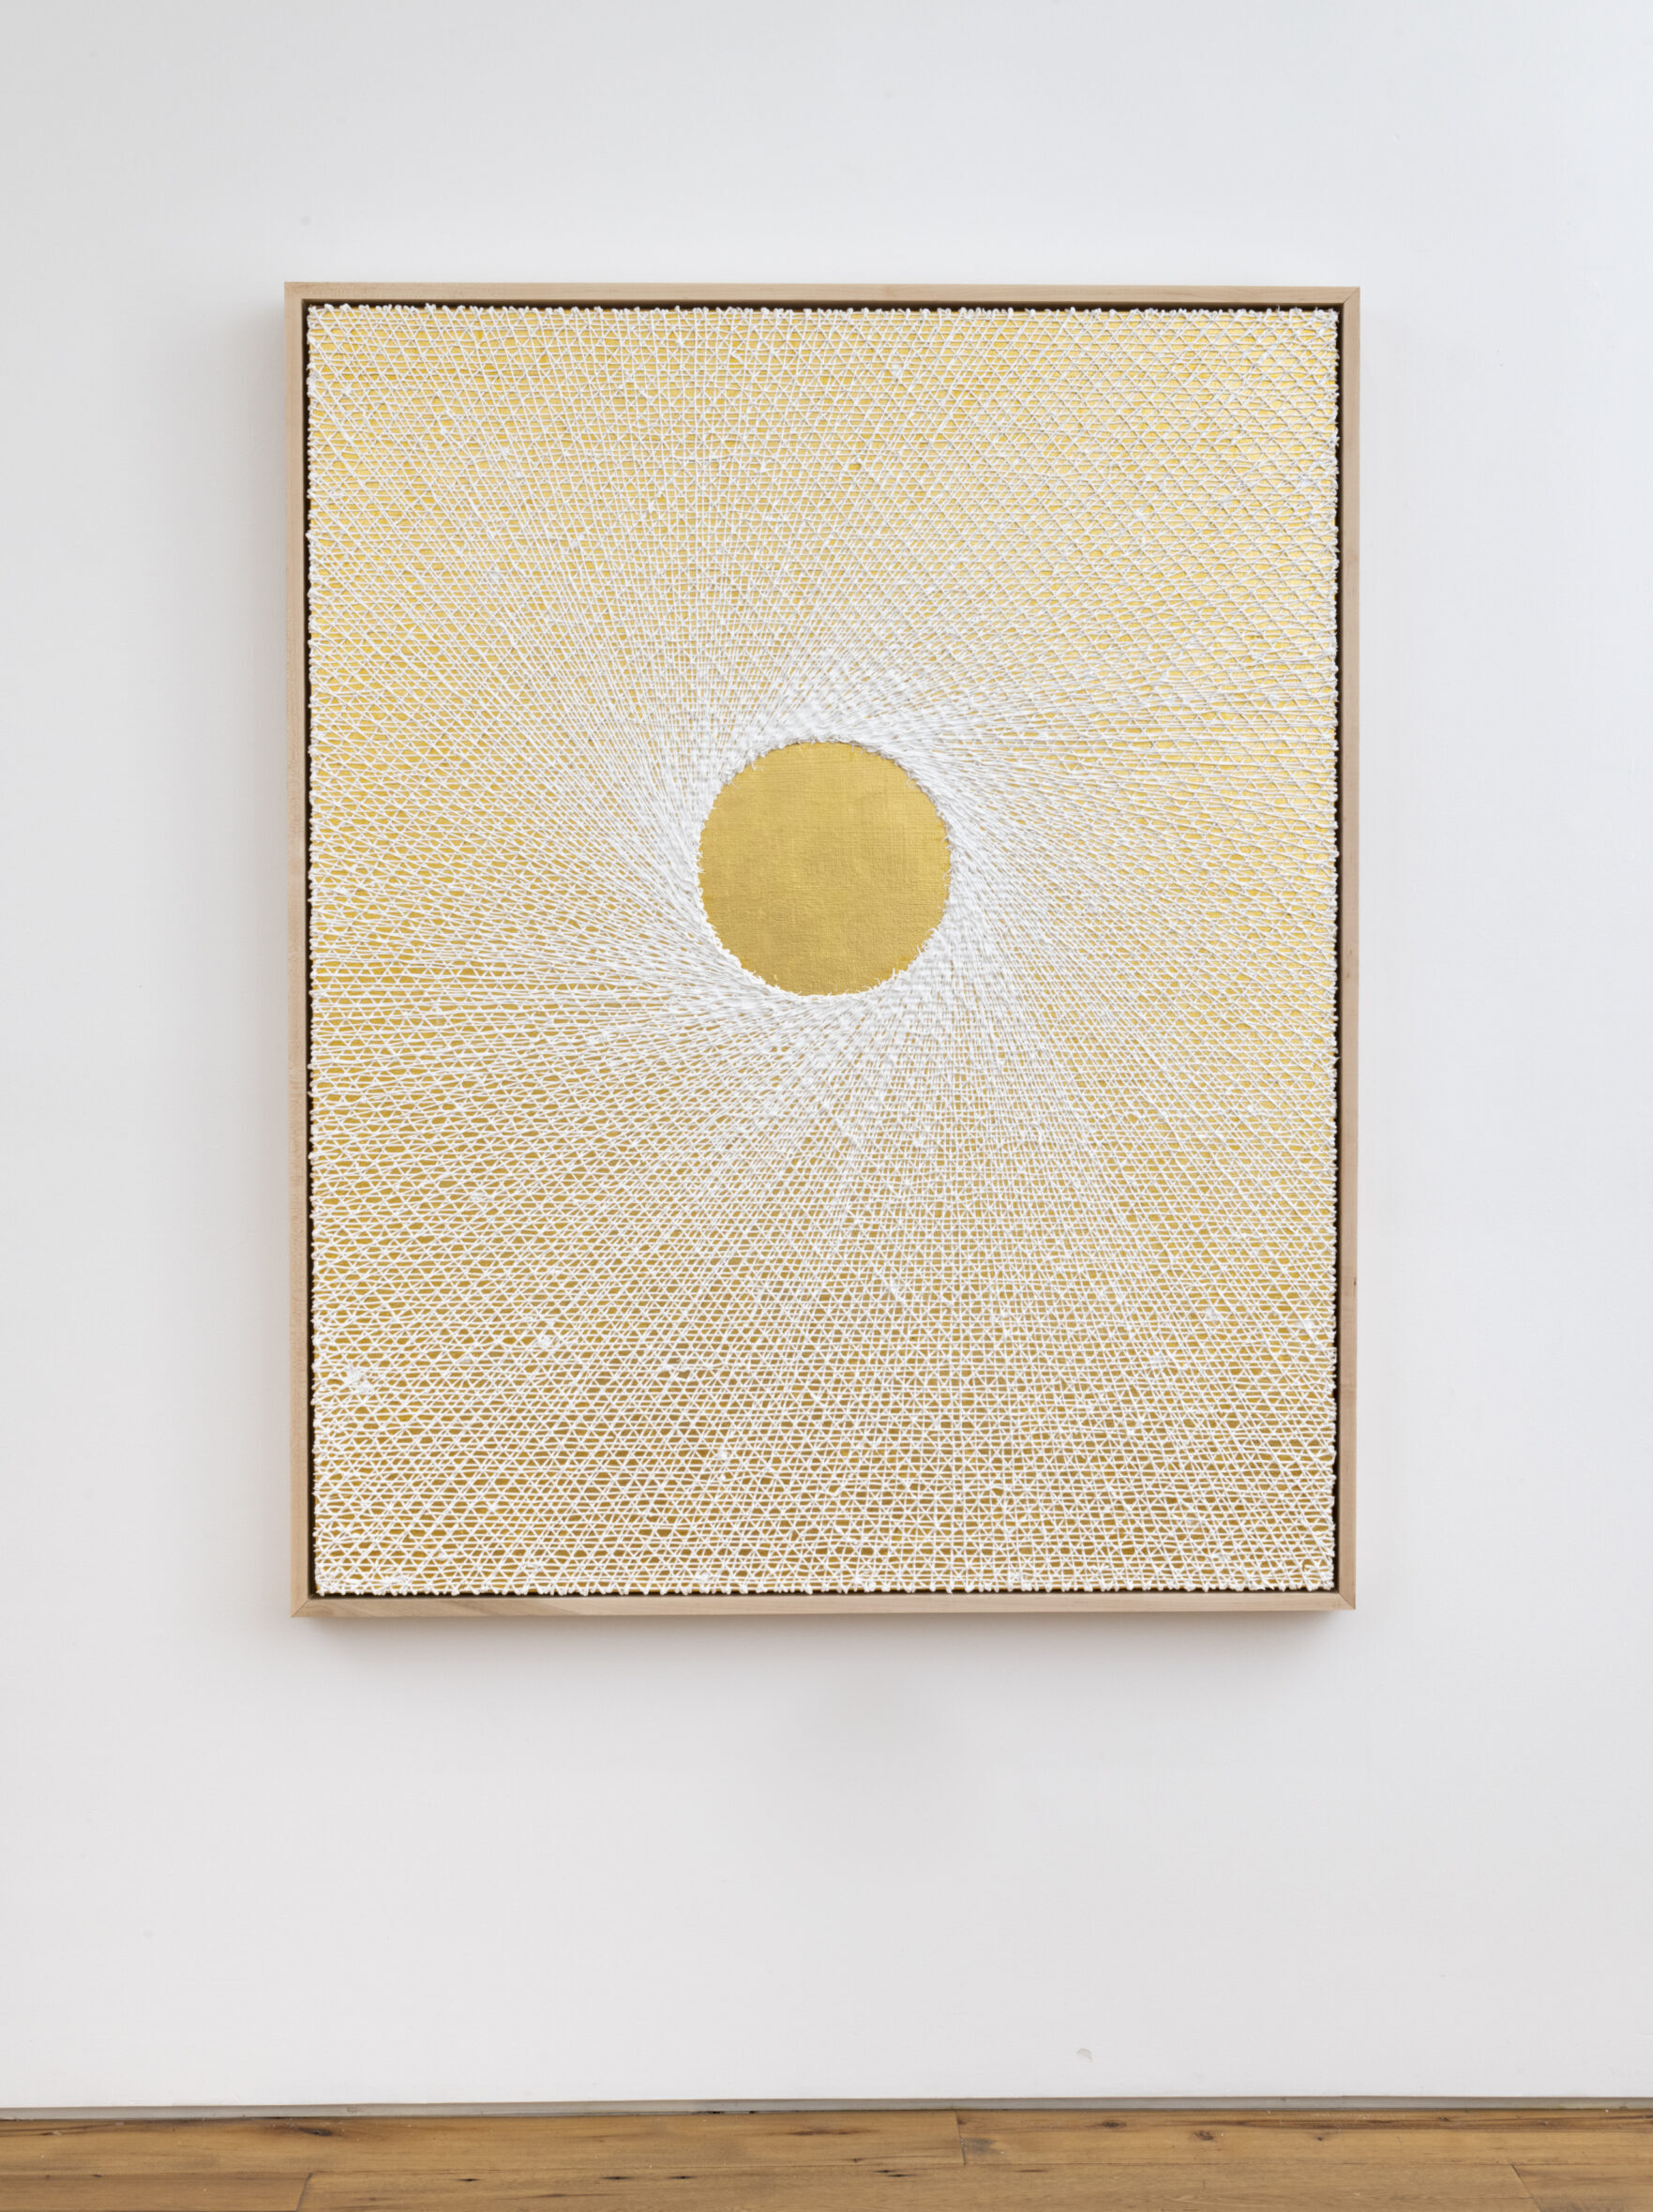 2020 Oil on 24k gold on canvas mounted to panel 62 x 50 x 3 in. - Marc Straus Gallery